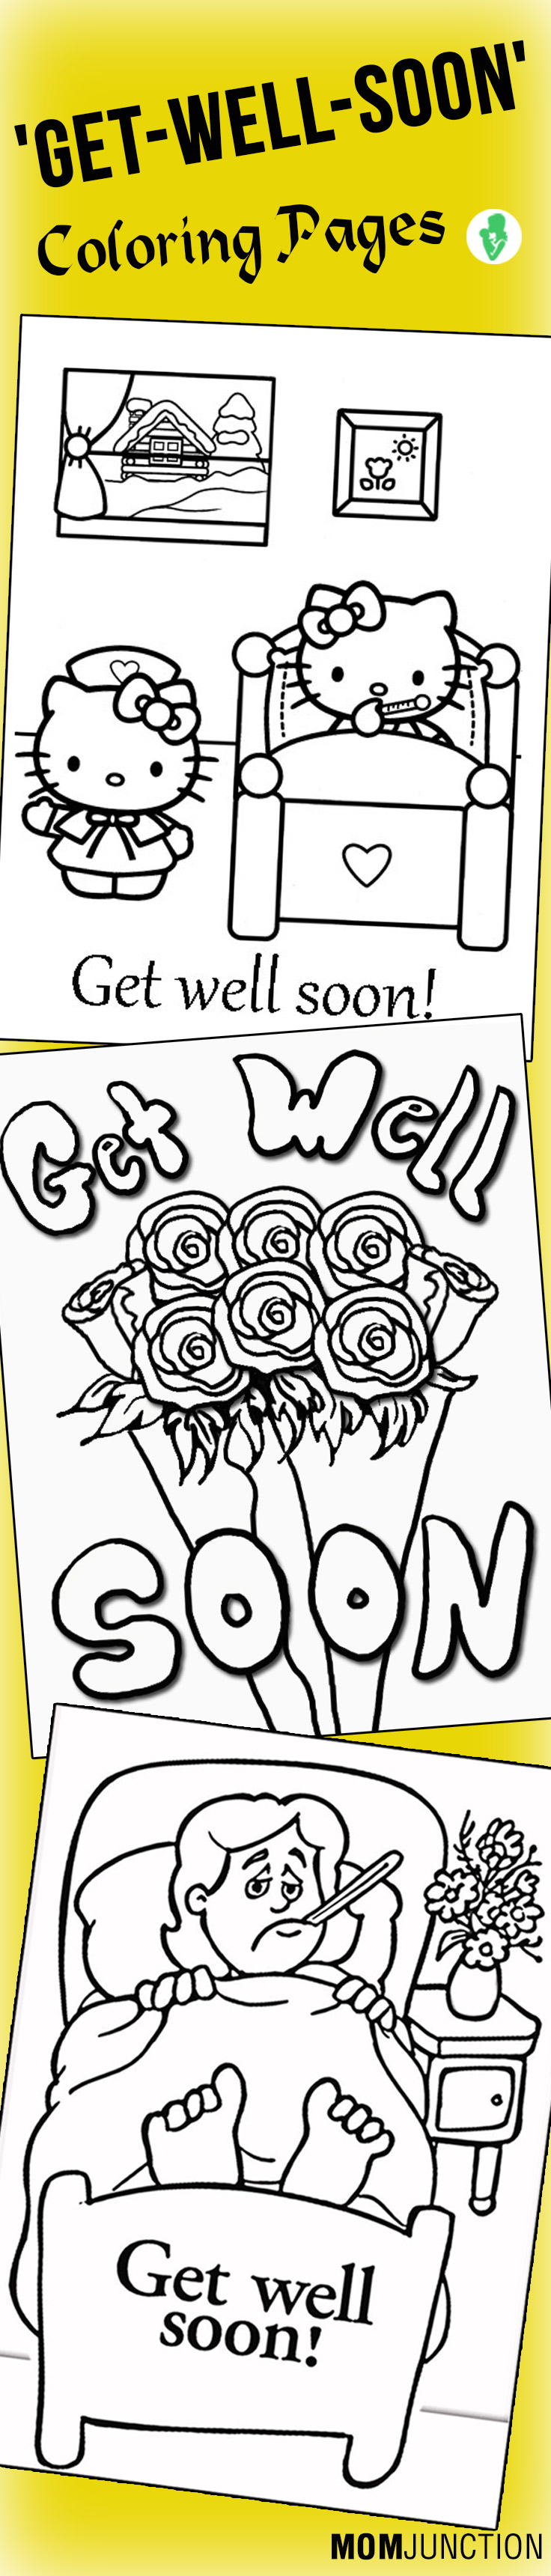 Coloring pages get well soon